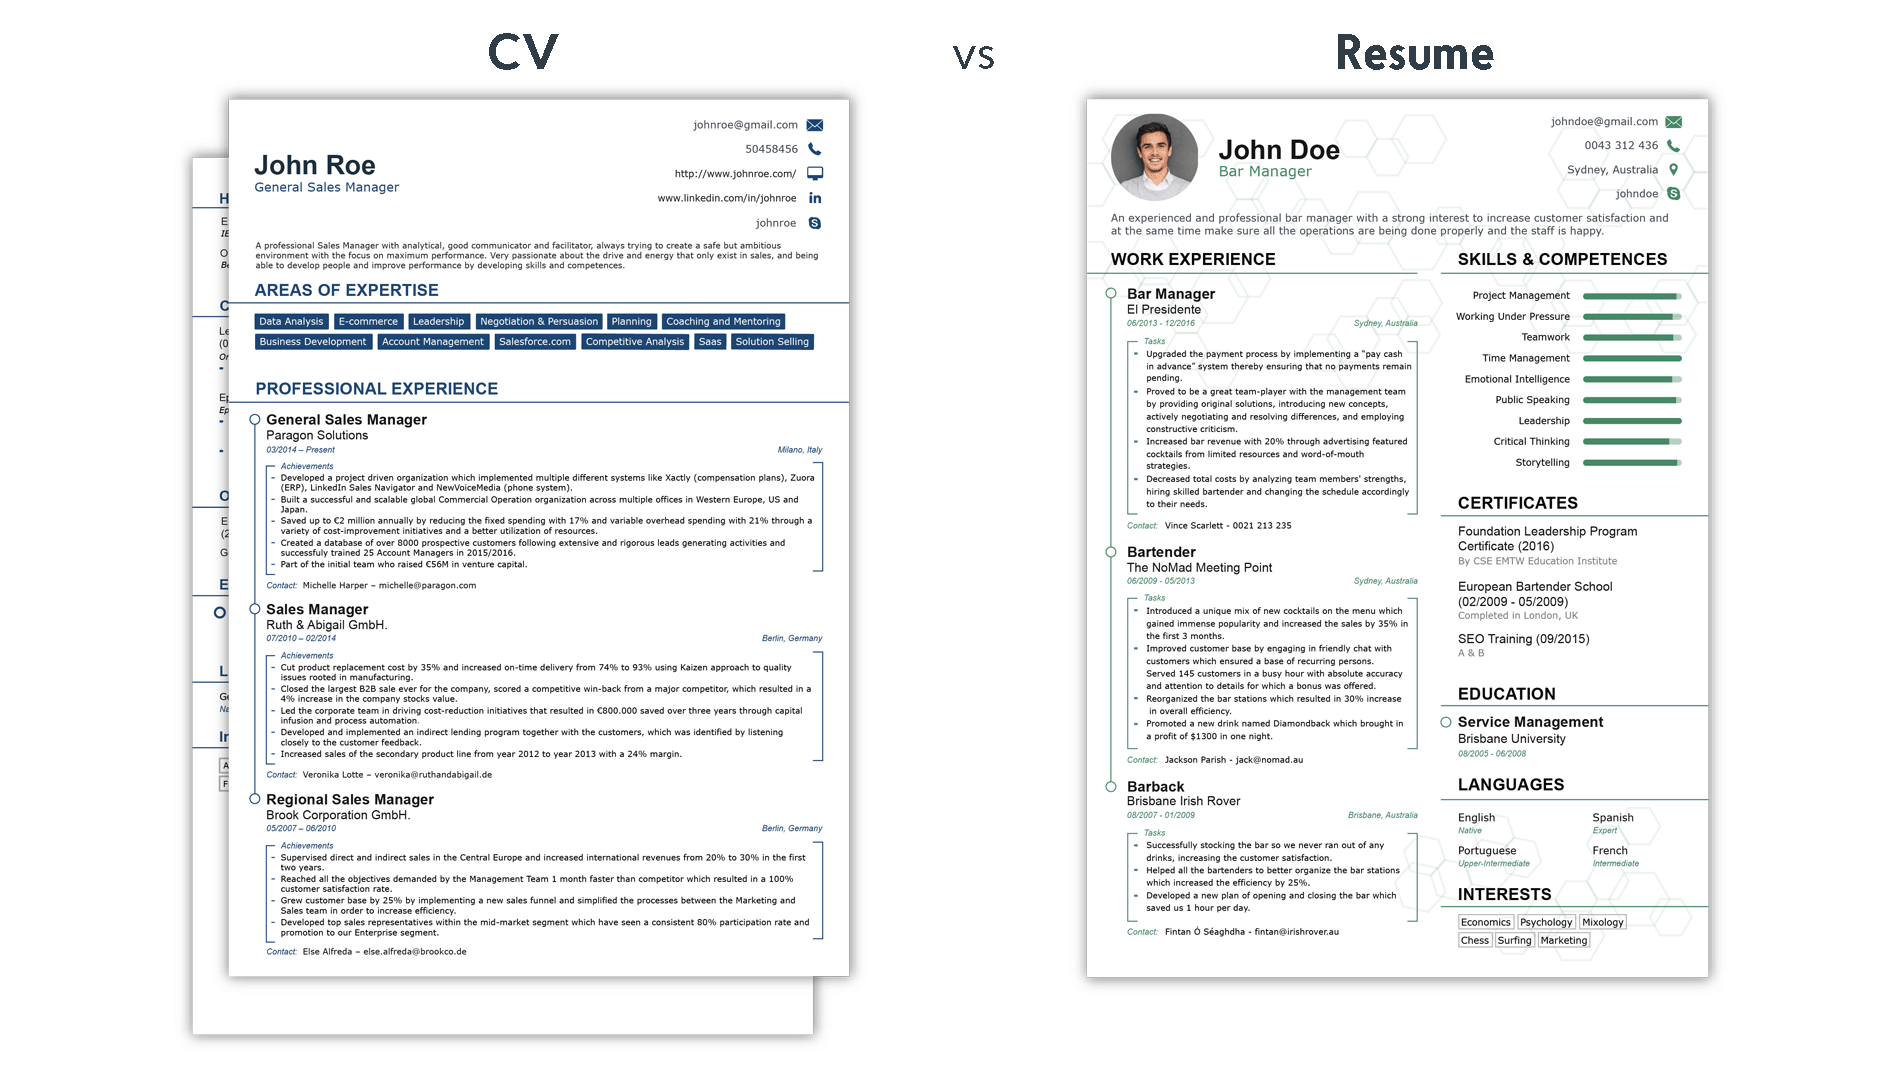 Curriculum Vitae Vs Resume  It Skills Resume